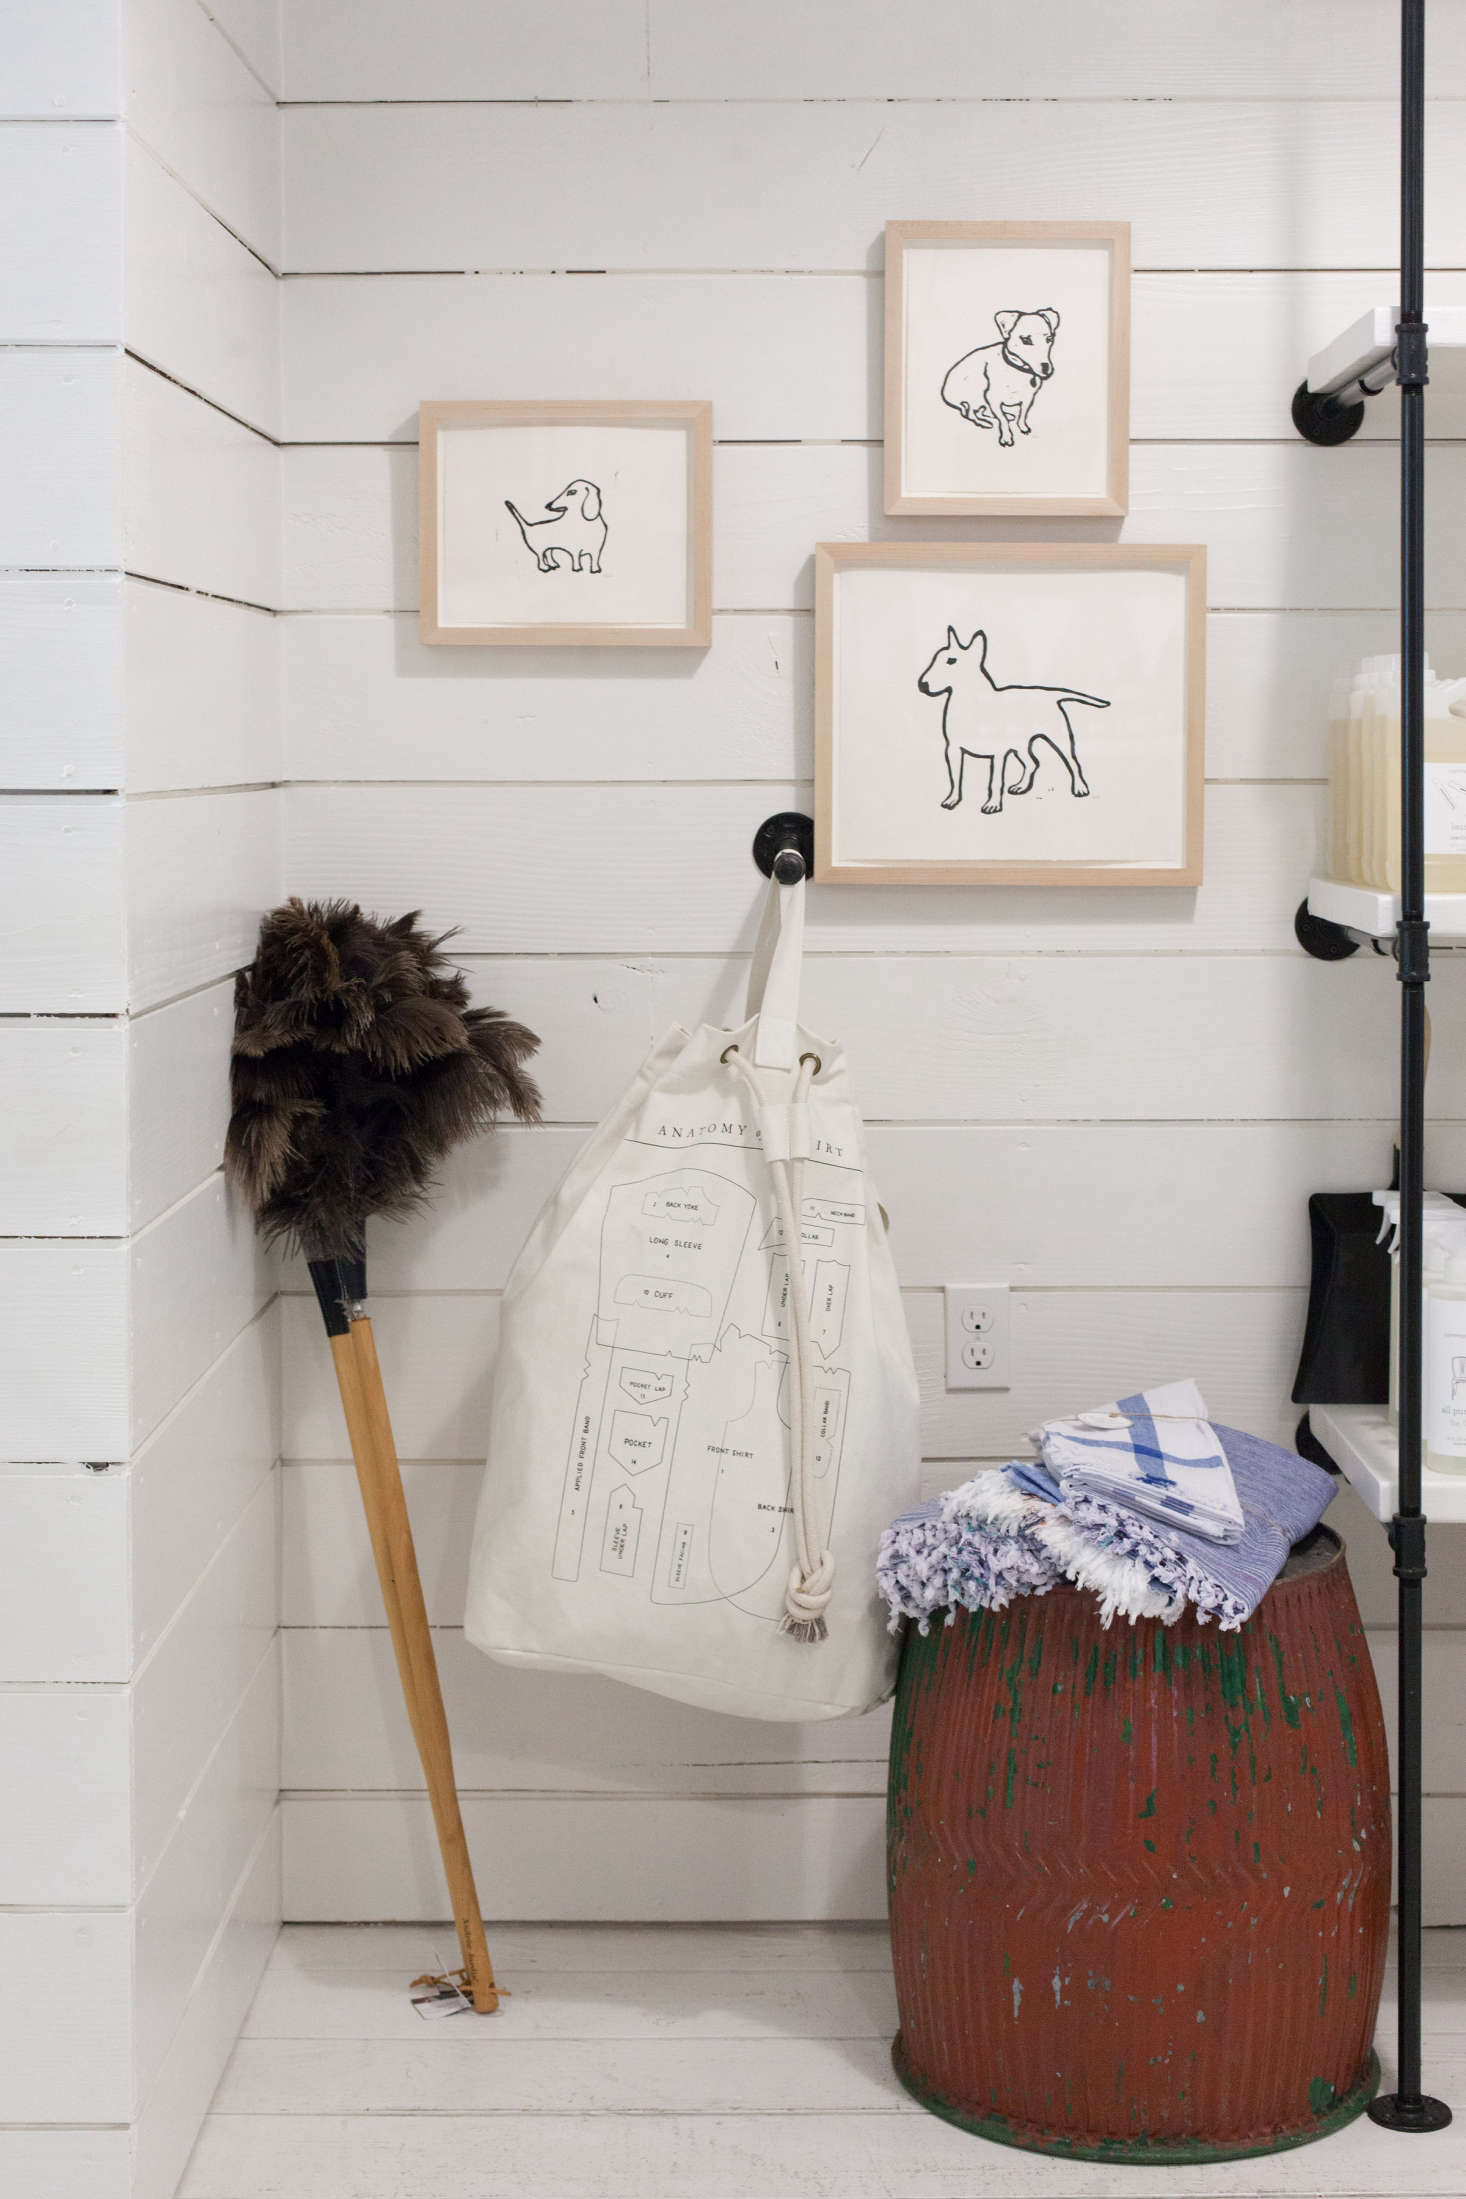 In the cleaning section: an Izola laundry bag and three Hugo Guinness dog prints.